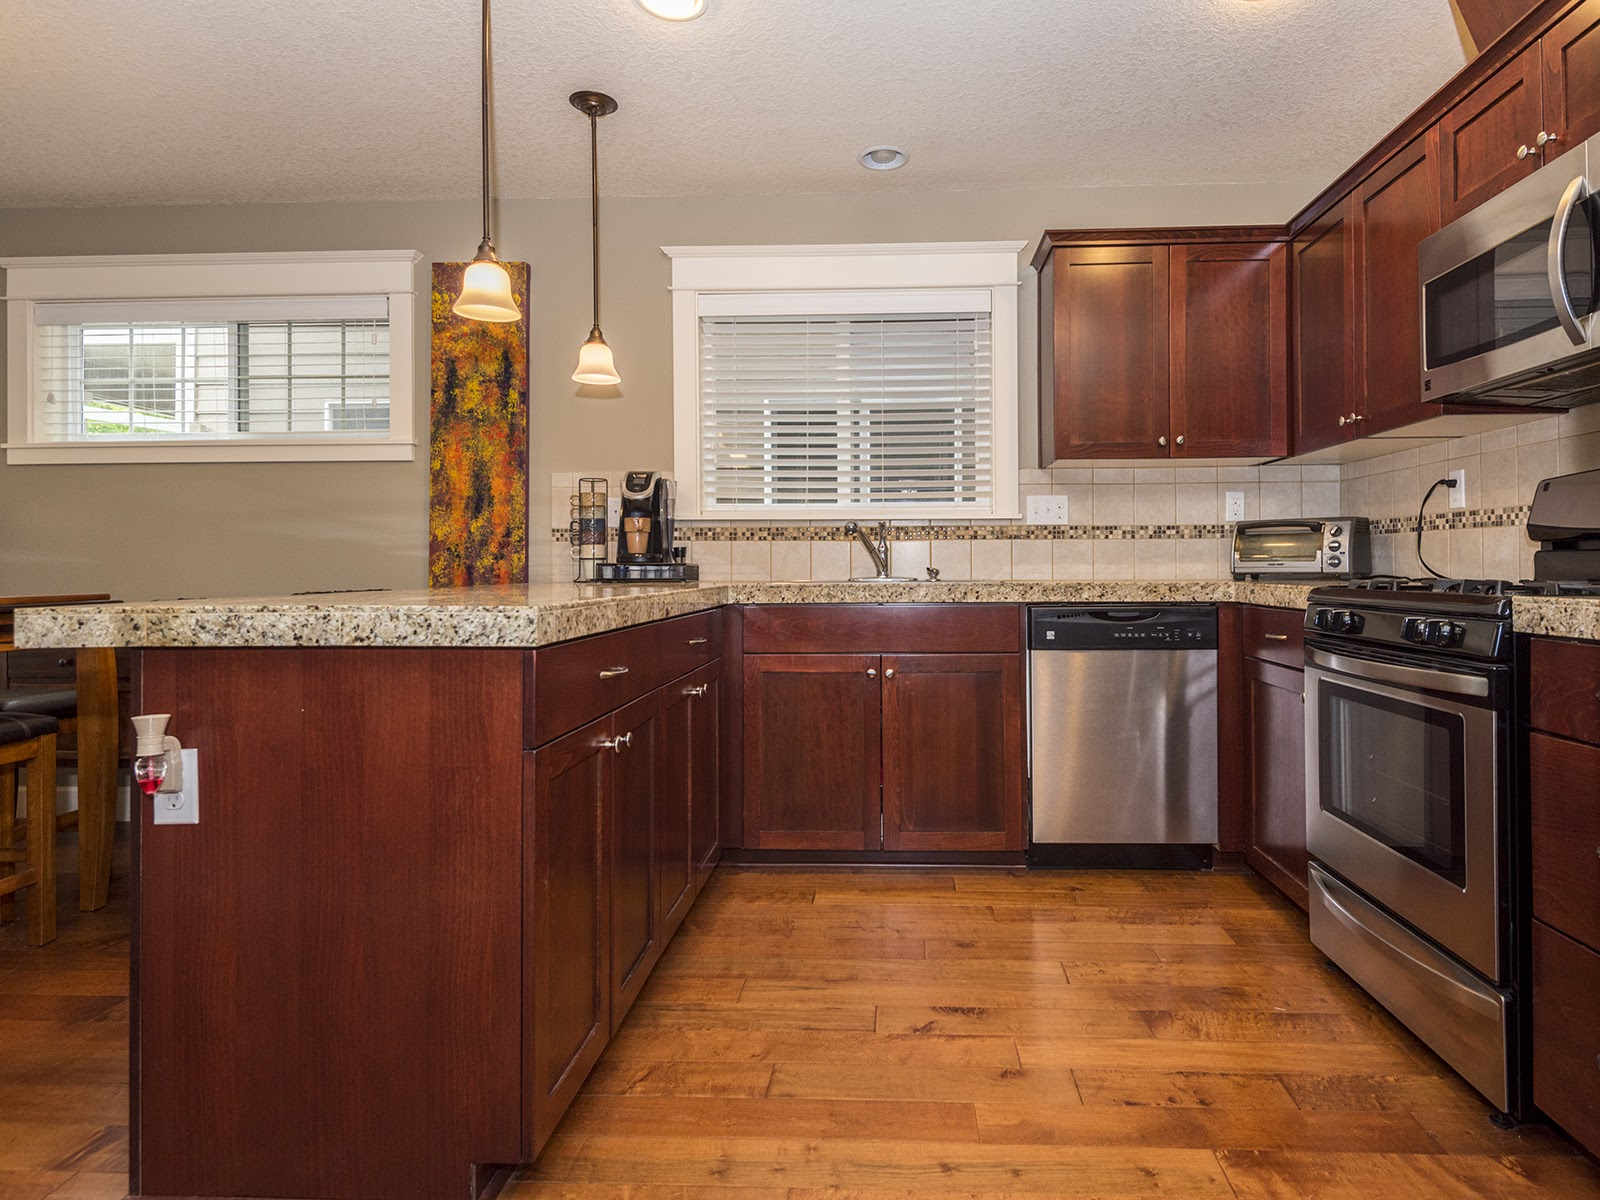 spacious kitchen with energy star SS appliances.